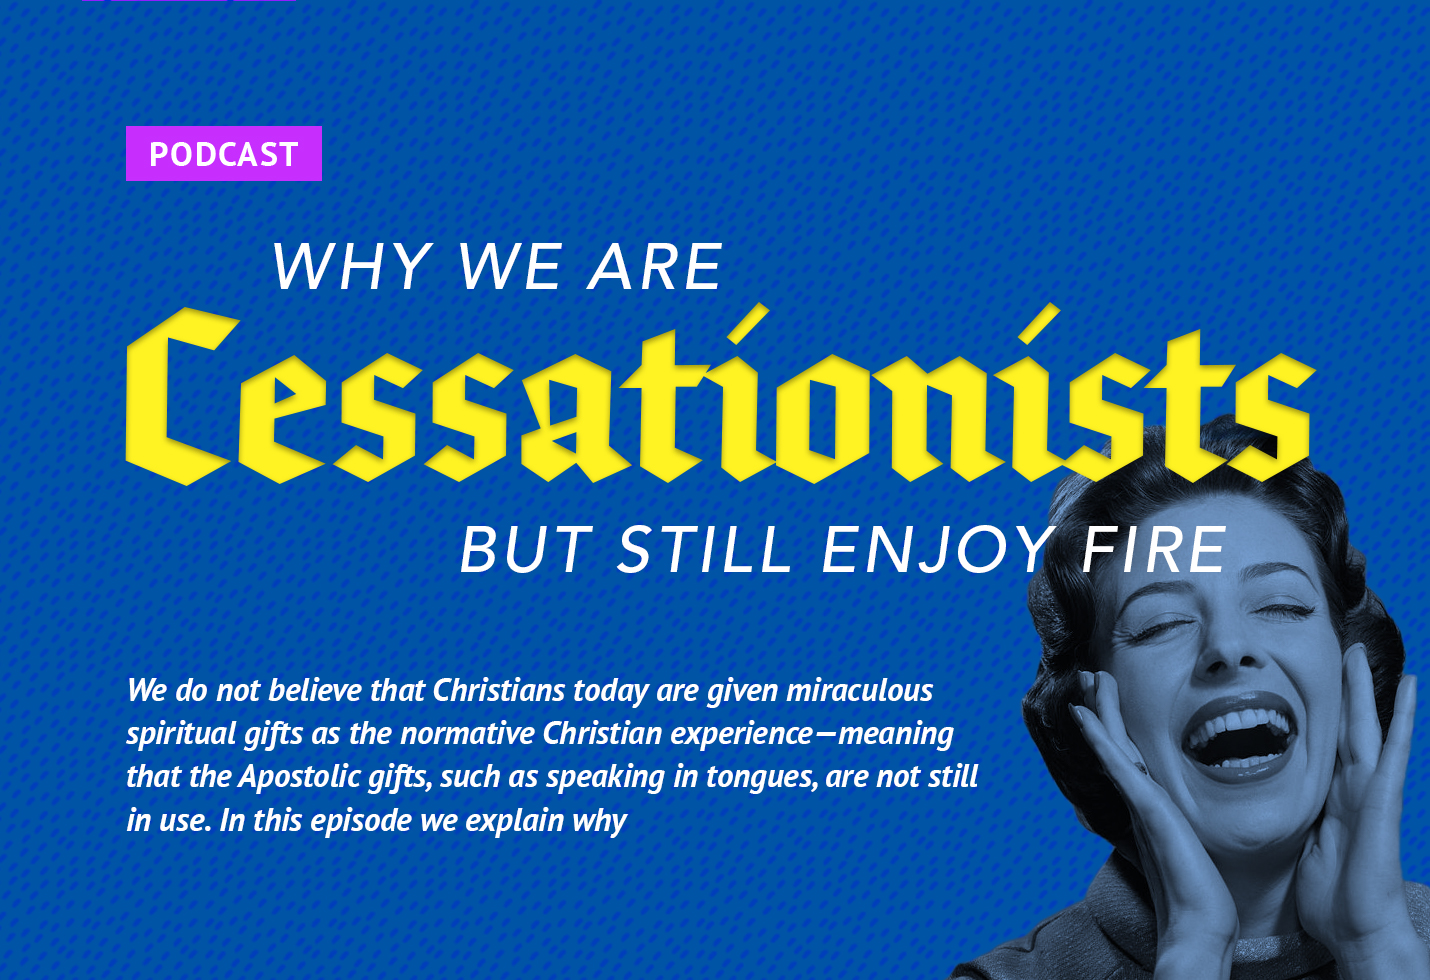 Why We Are Cessationists But Still Enjoy Fire - Sheologians